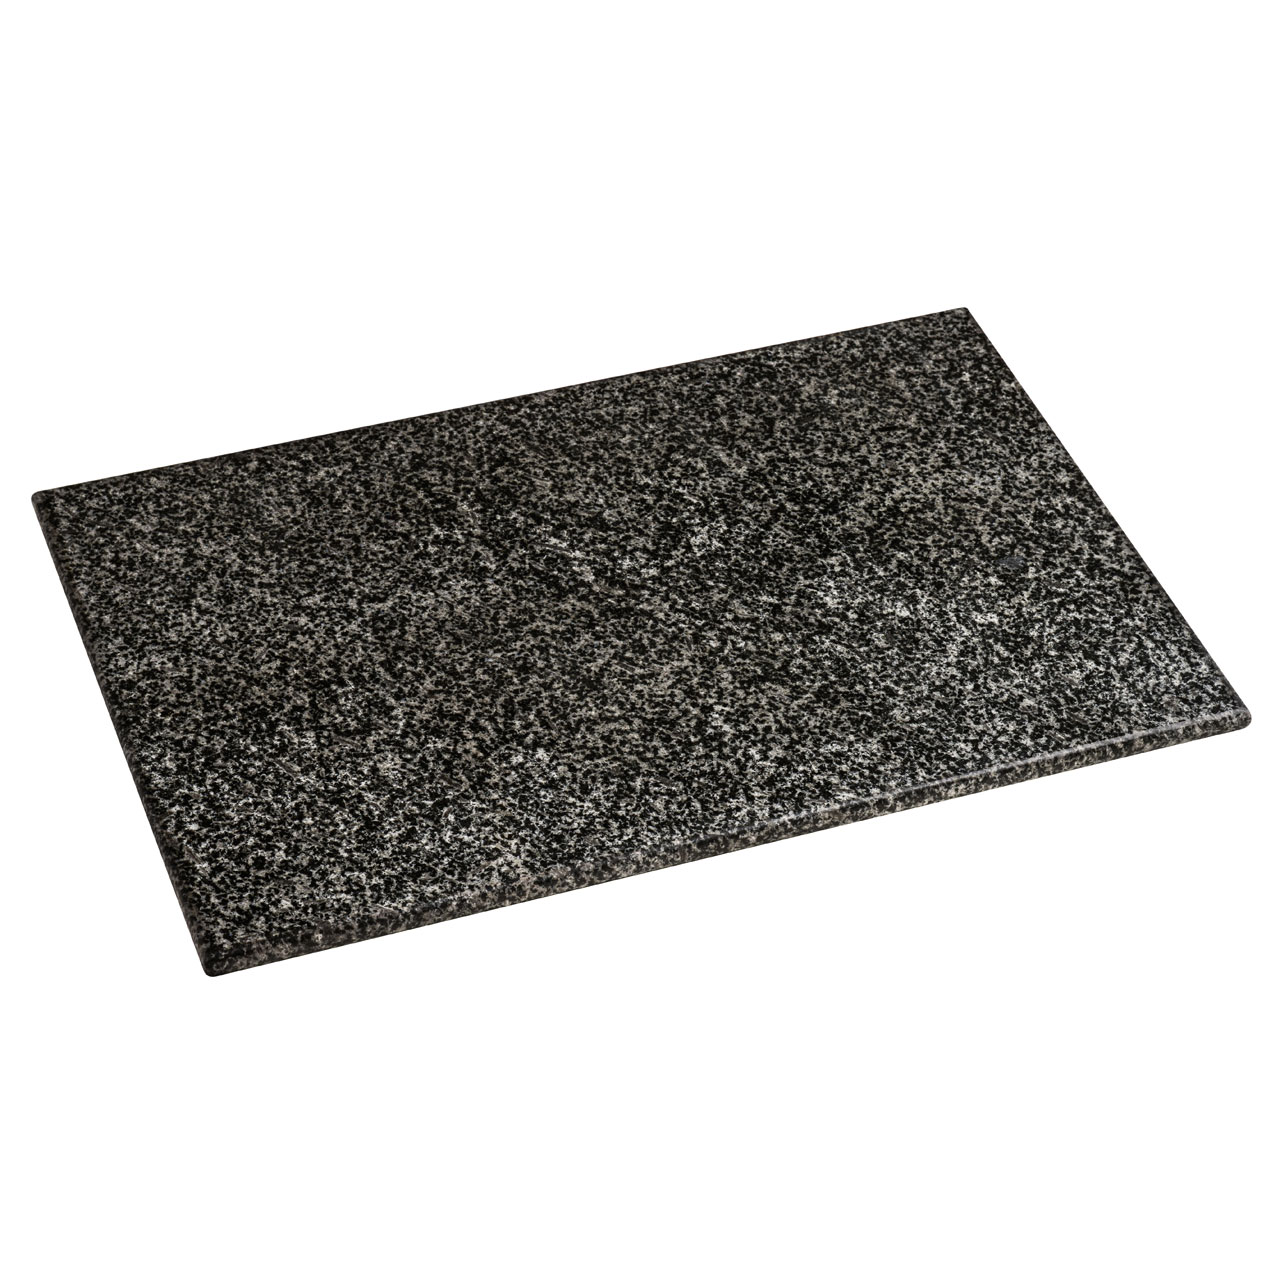 Chopping Board Rubber Feet Cutting Block Black Speckled